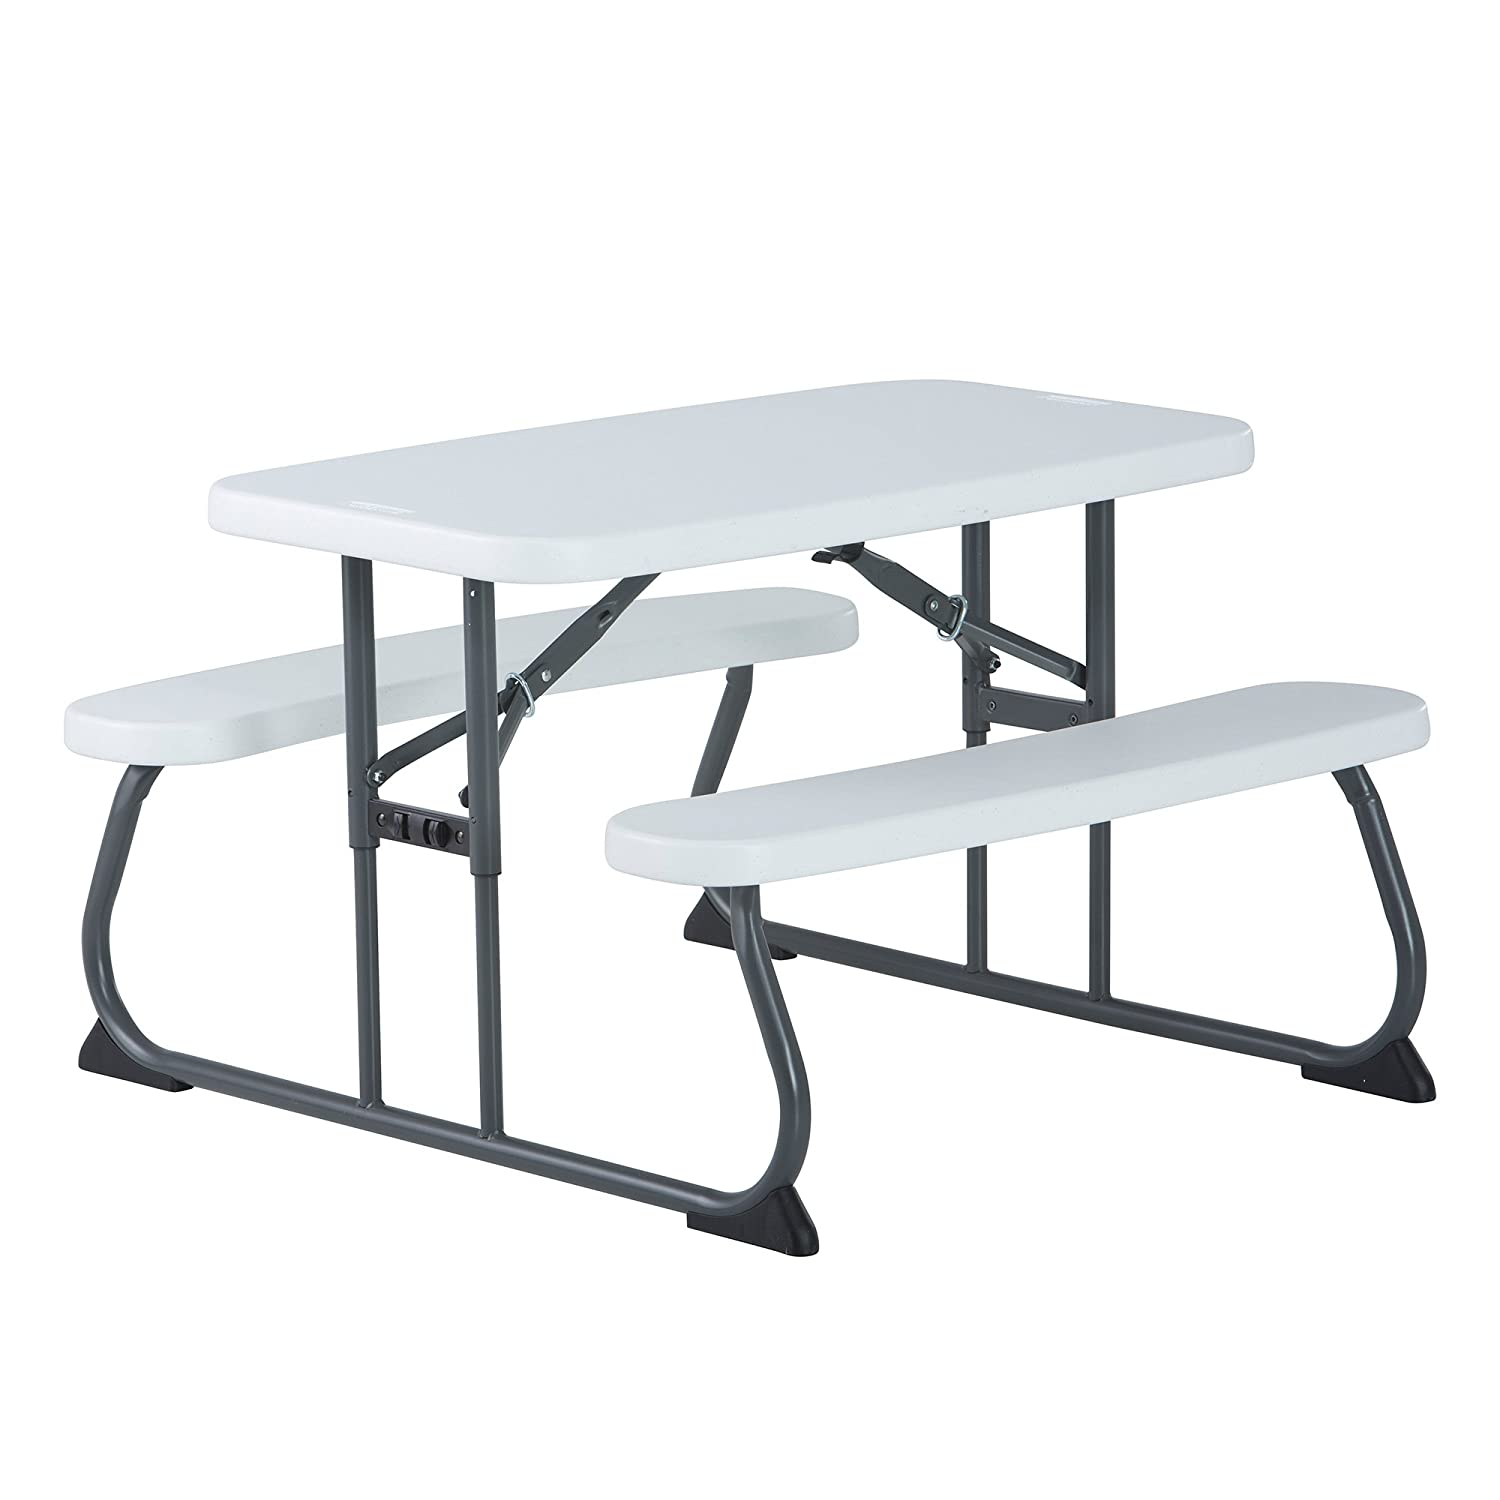 Lifetime 60239 Kid s Picnic Table, White